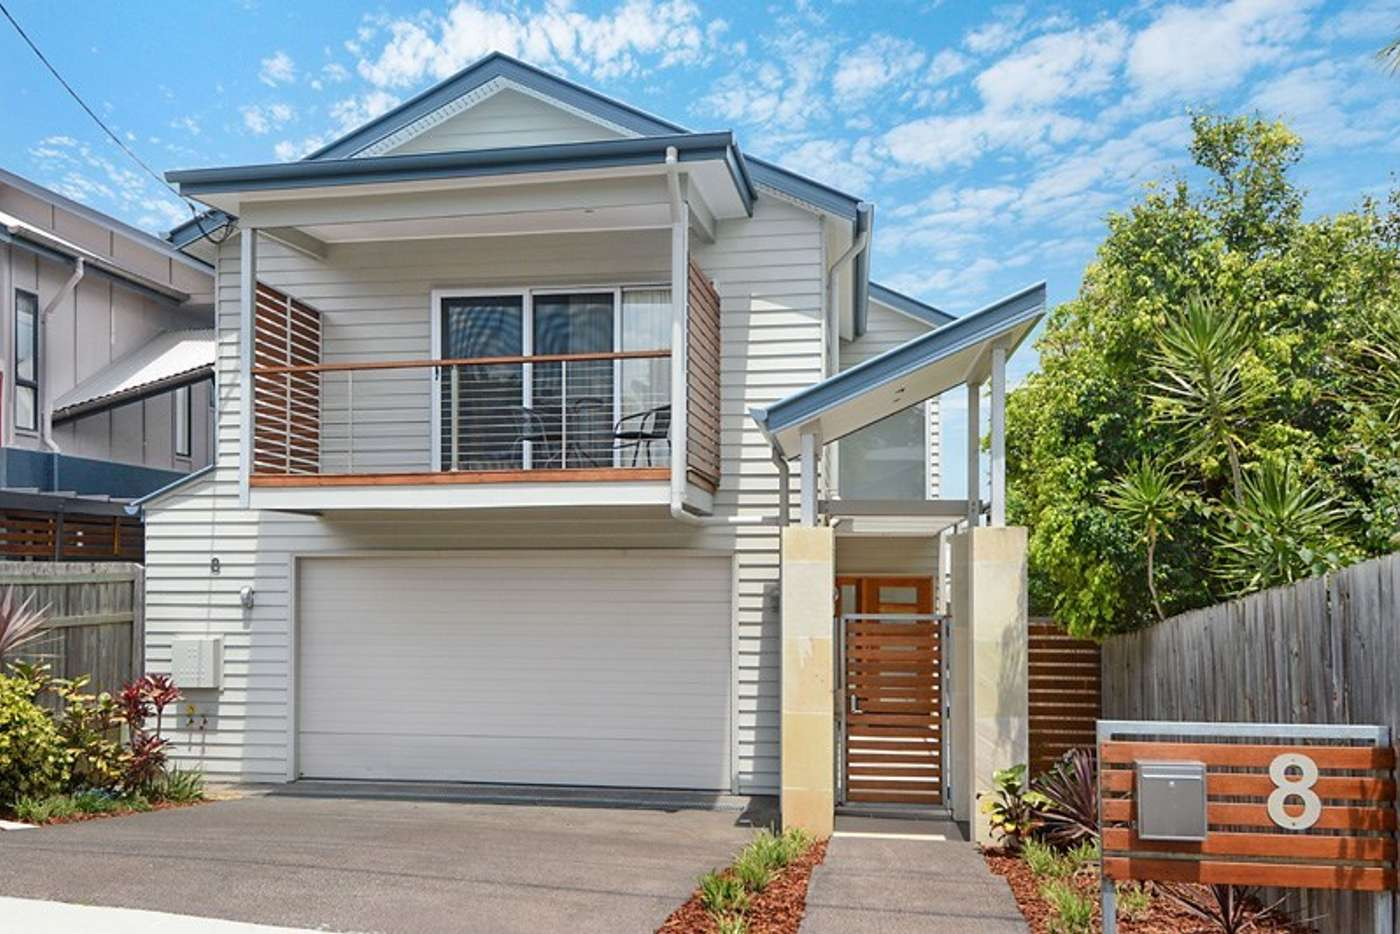 Main view of Homely house listing, 8 South Street, Newmarket QLD 4051